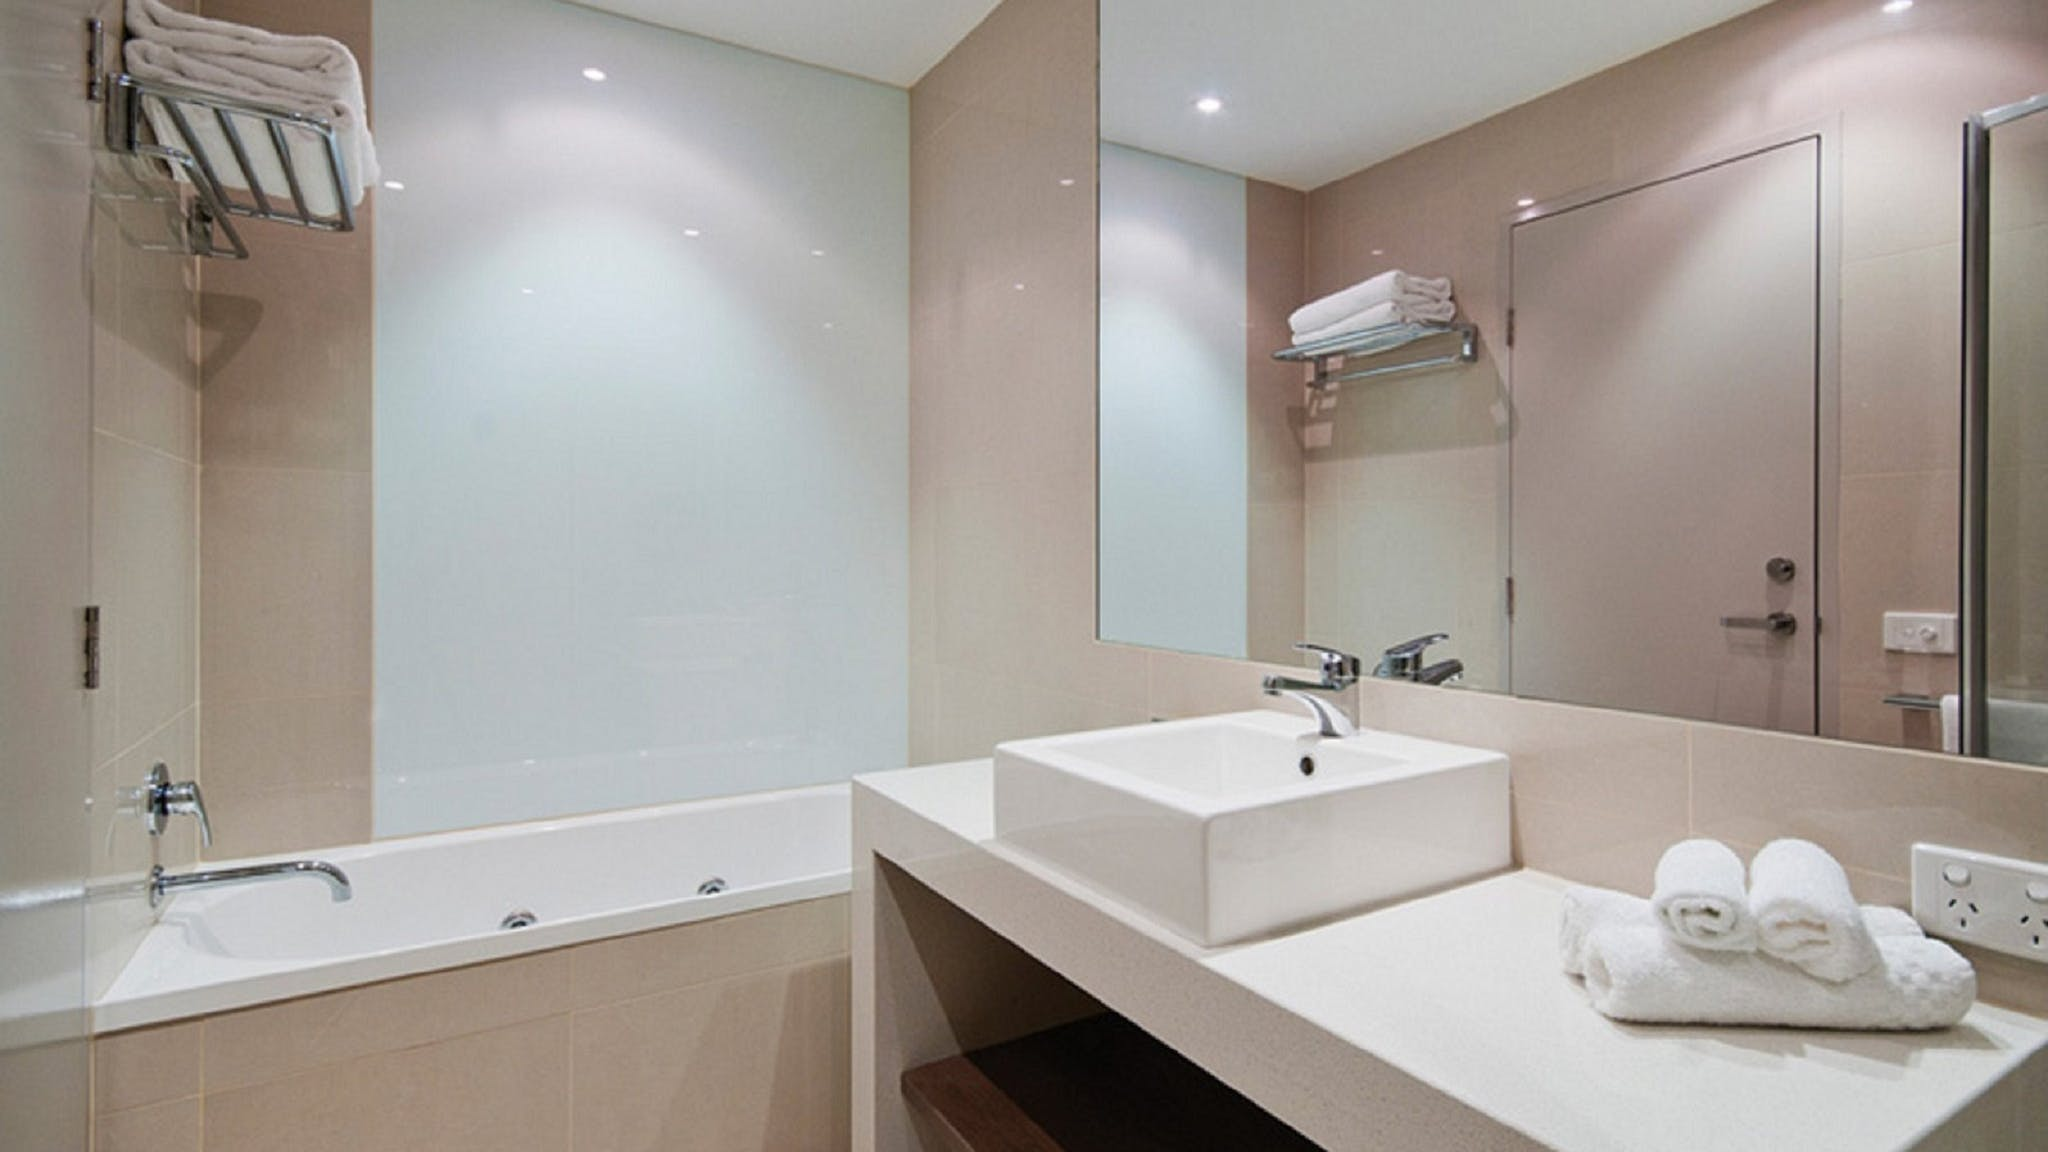 The Gateway's Apartments include bathroom with spa bath and separate toilet